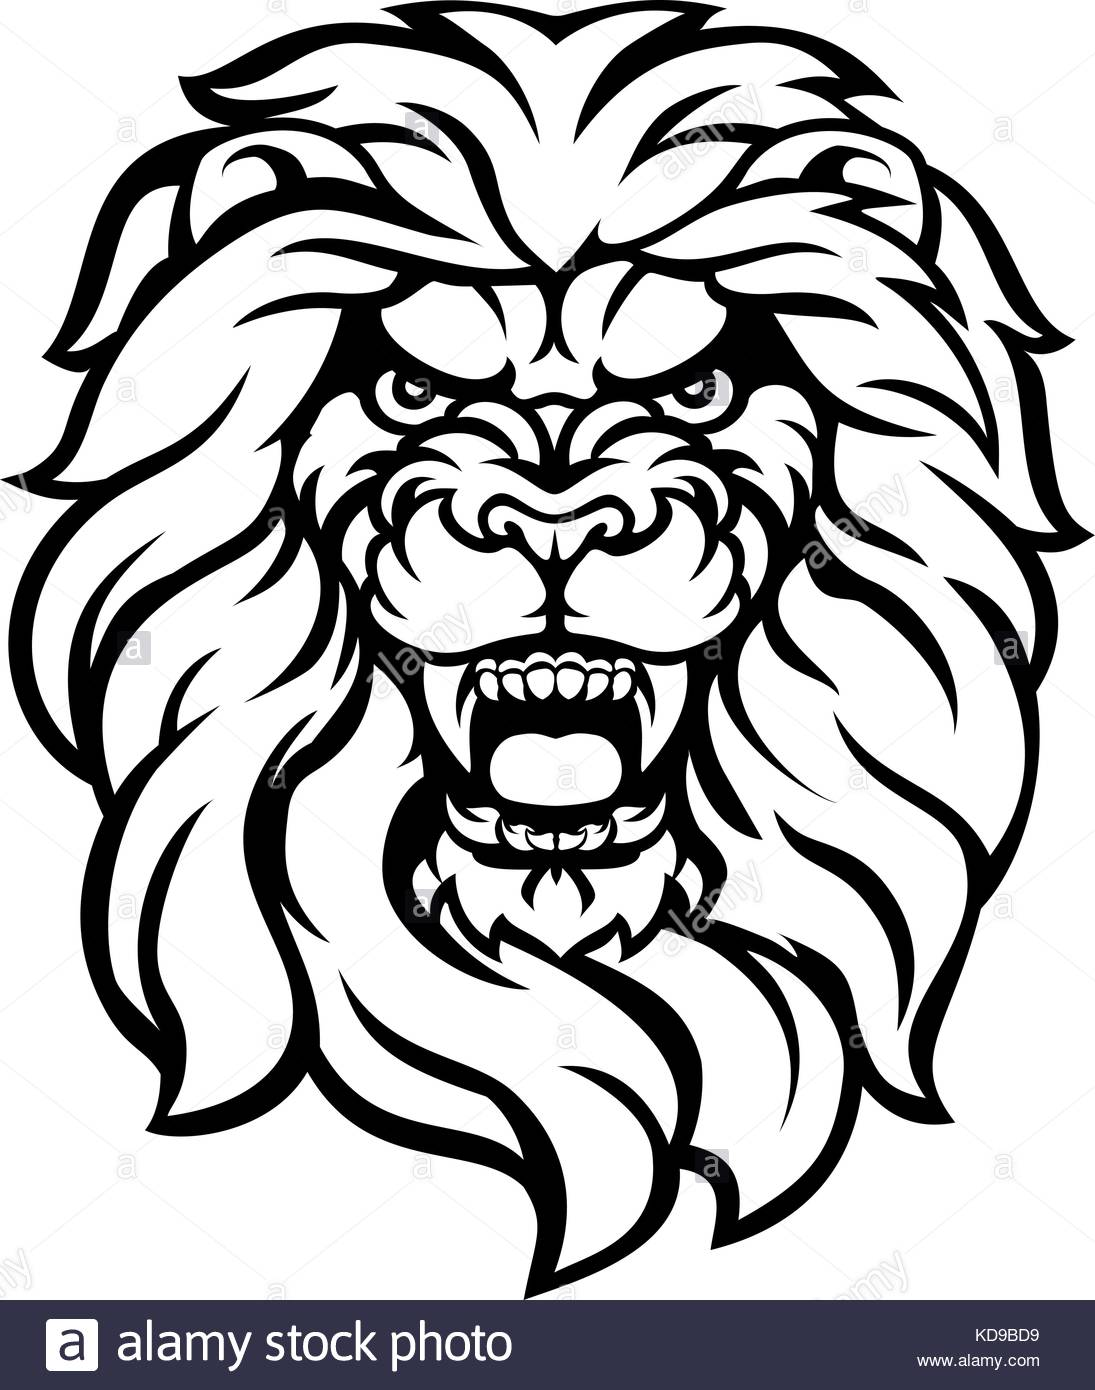 1095x1390 Lion Roaring Stock Vector Images